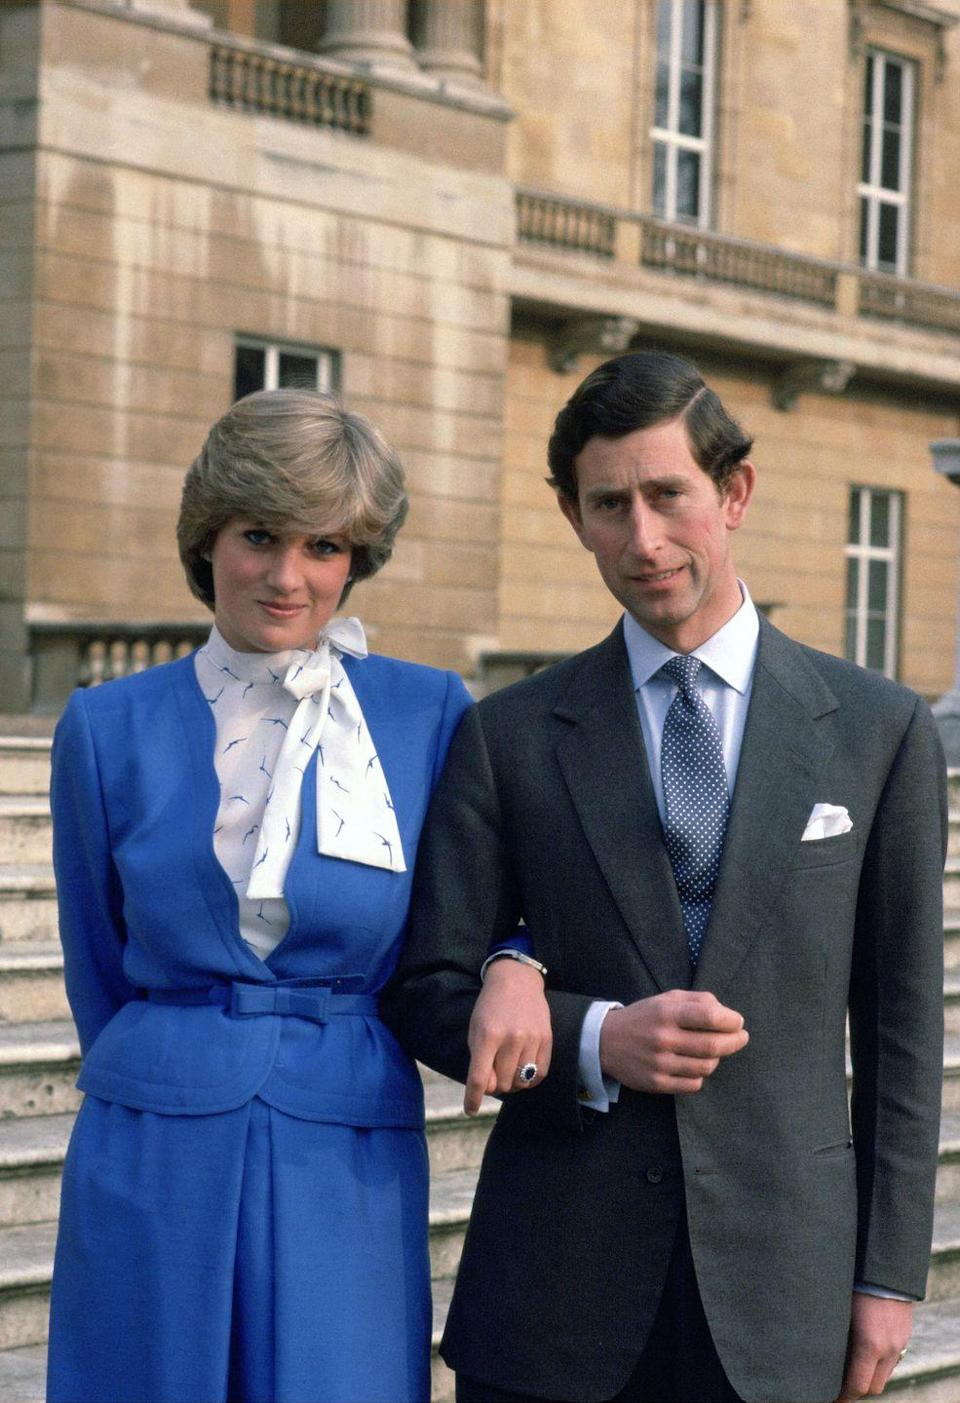 """<p>Charles and Diana only dated for six months before they became engaged. It was later <a href=""""https://www.townandcountrymag.com/society/tradition/a29873445/prince-charles-princess-diana-relationship-first-meeting/"""" rel=""""nofollow noopener"""" target=""""_blank"""" data-ylk=""""slk:revealed"""" class=""""link rapid-noclick-resp"""">revealed</a> that they met in person just 13 times before Charles proposed. </p>"""